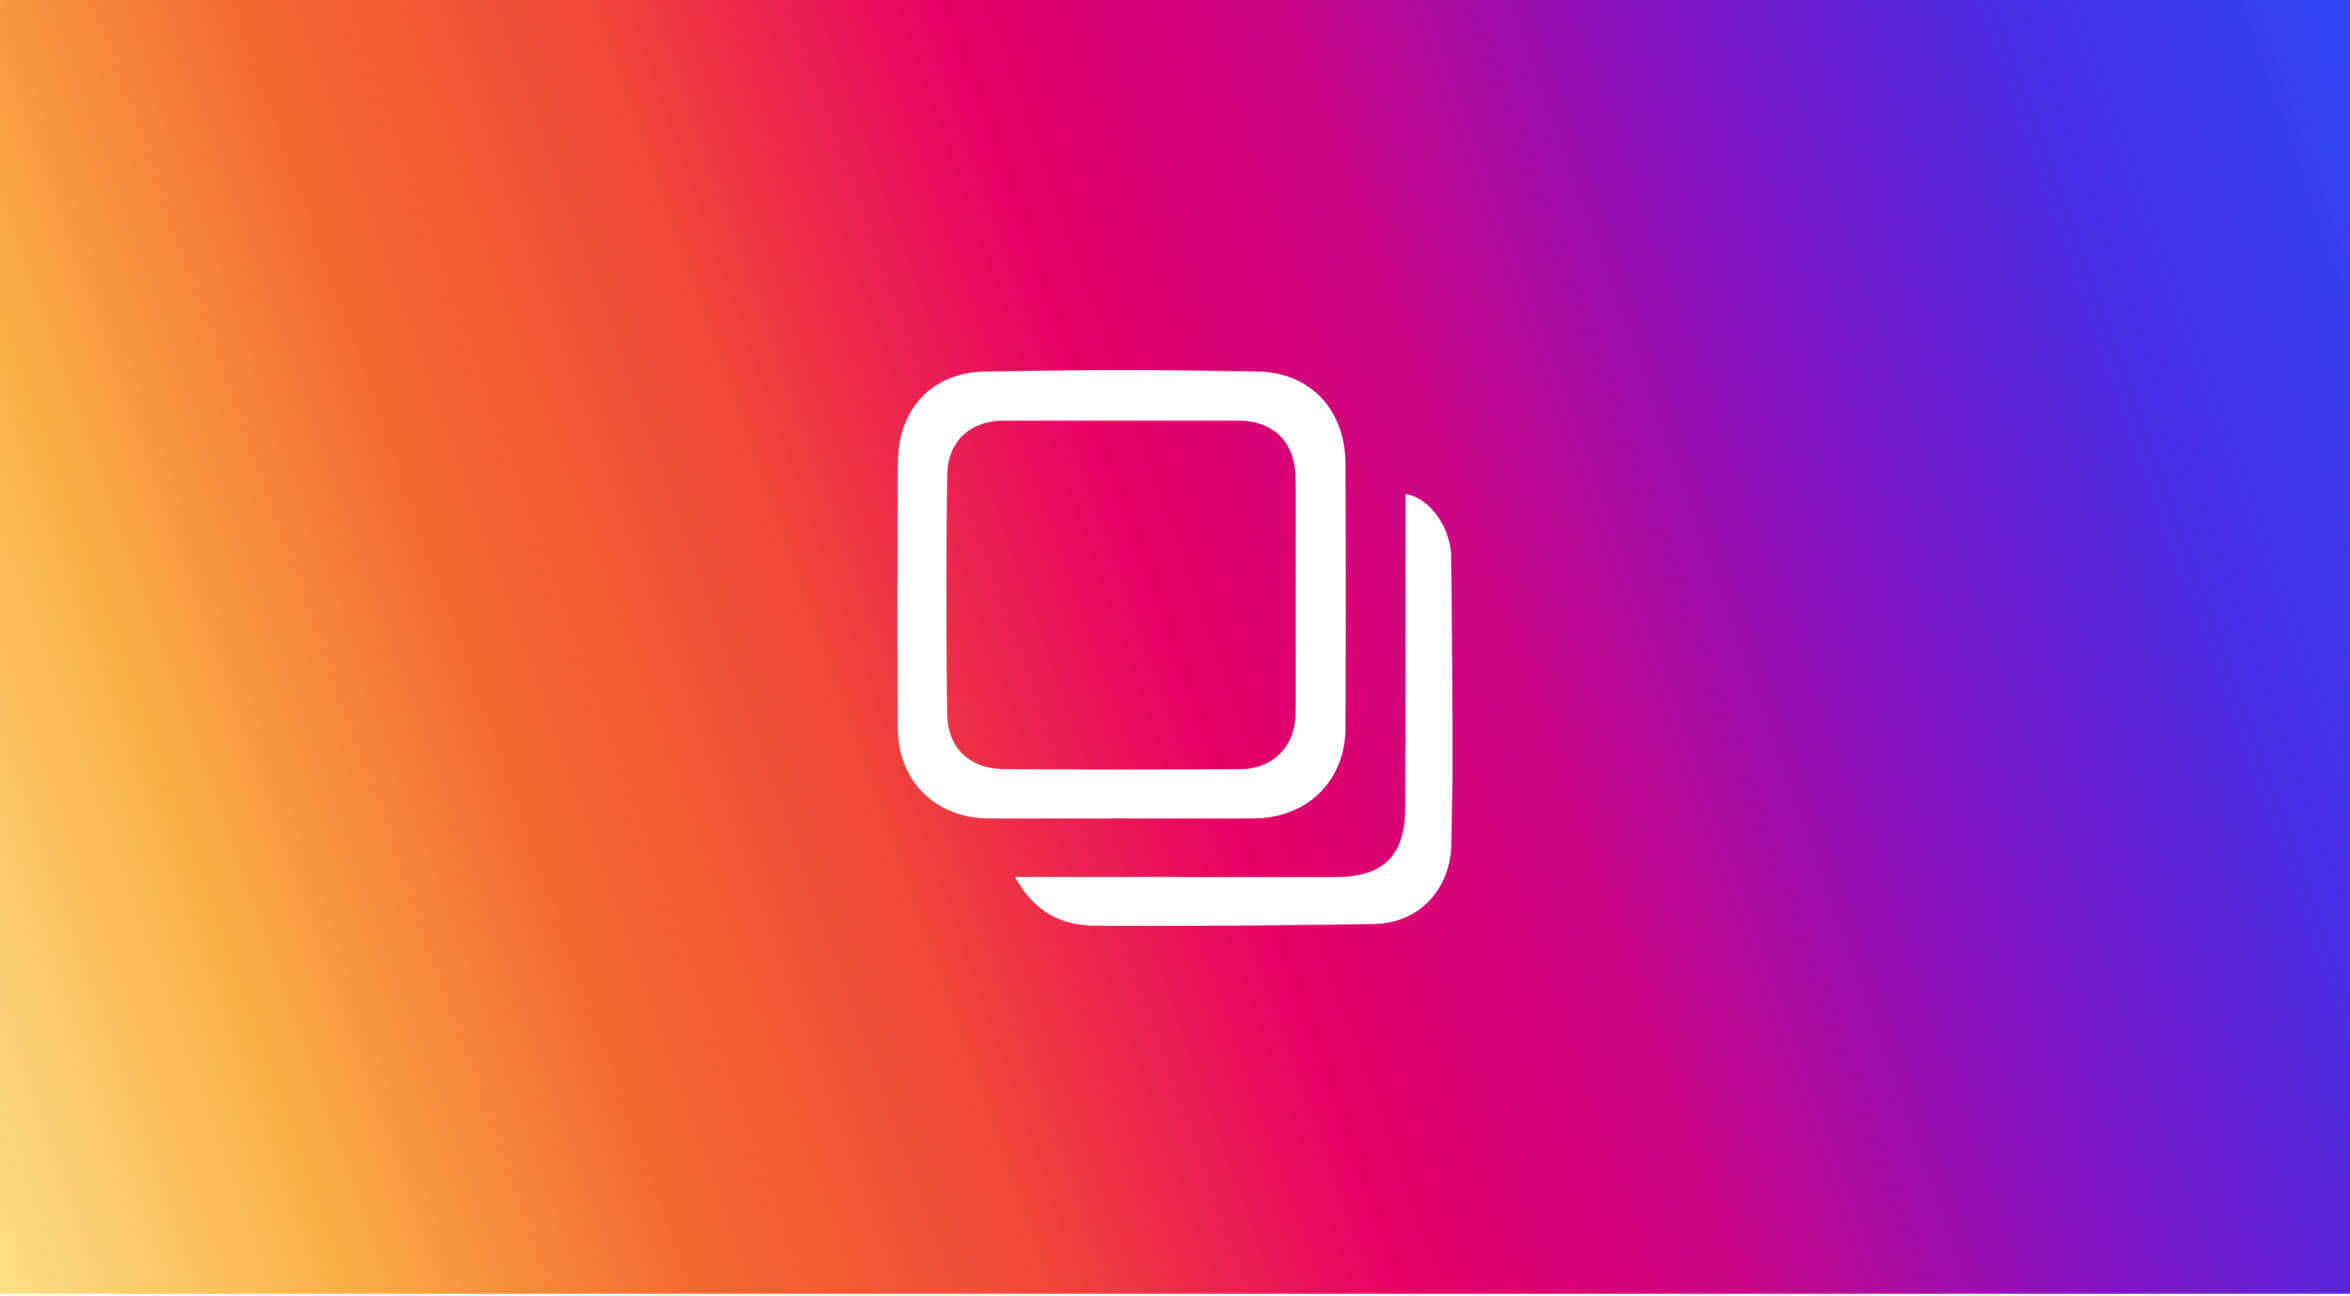 Tips to Use Instagram as a Graphic Designer - Instagram Carousels